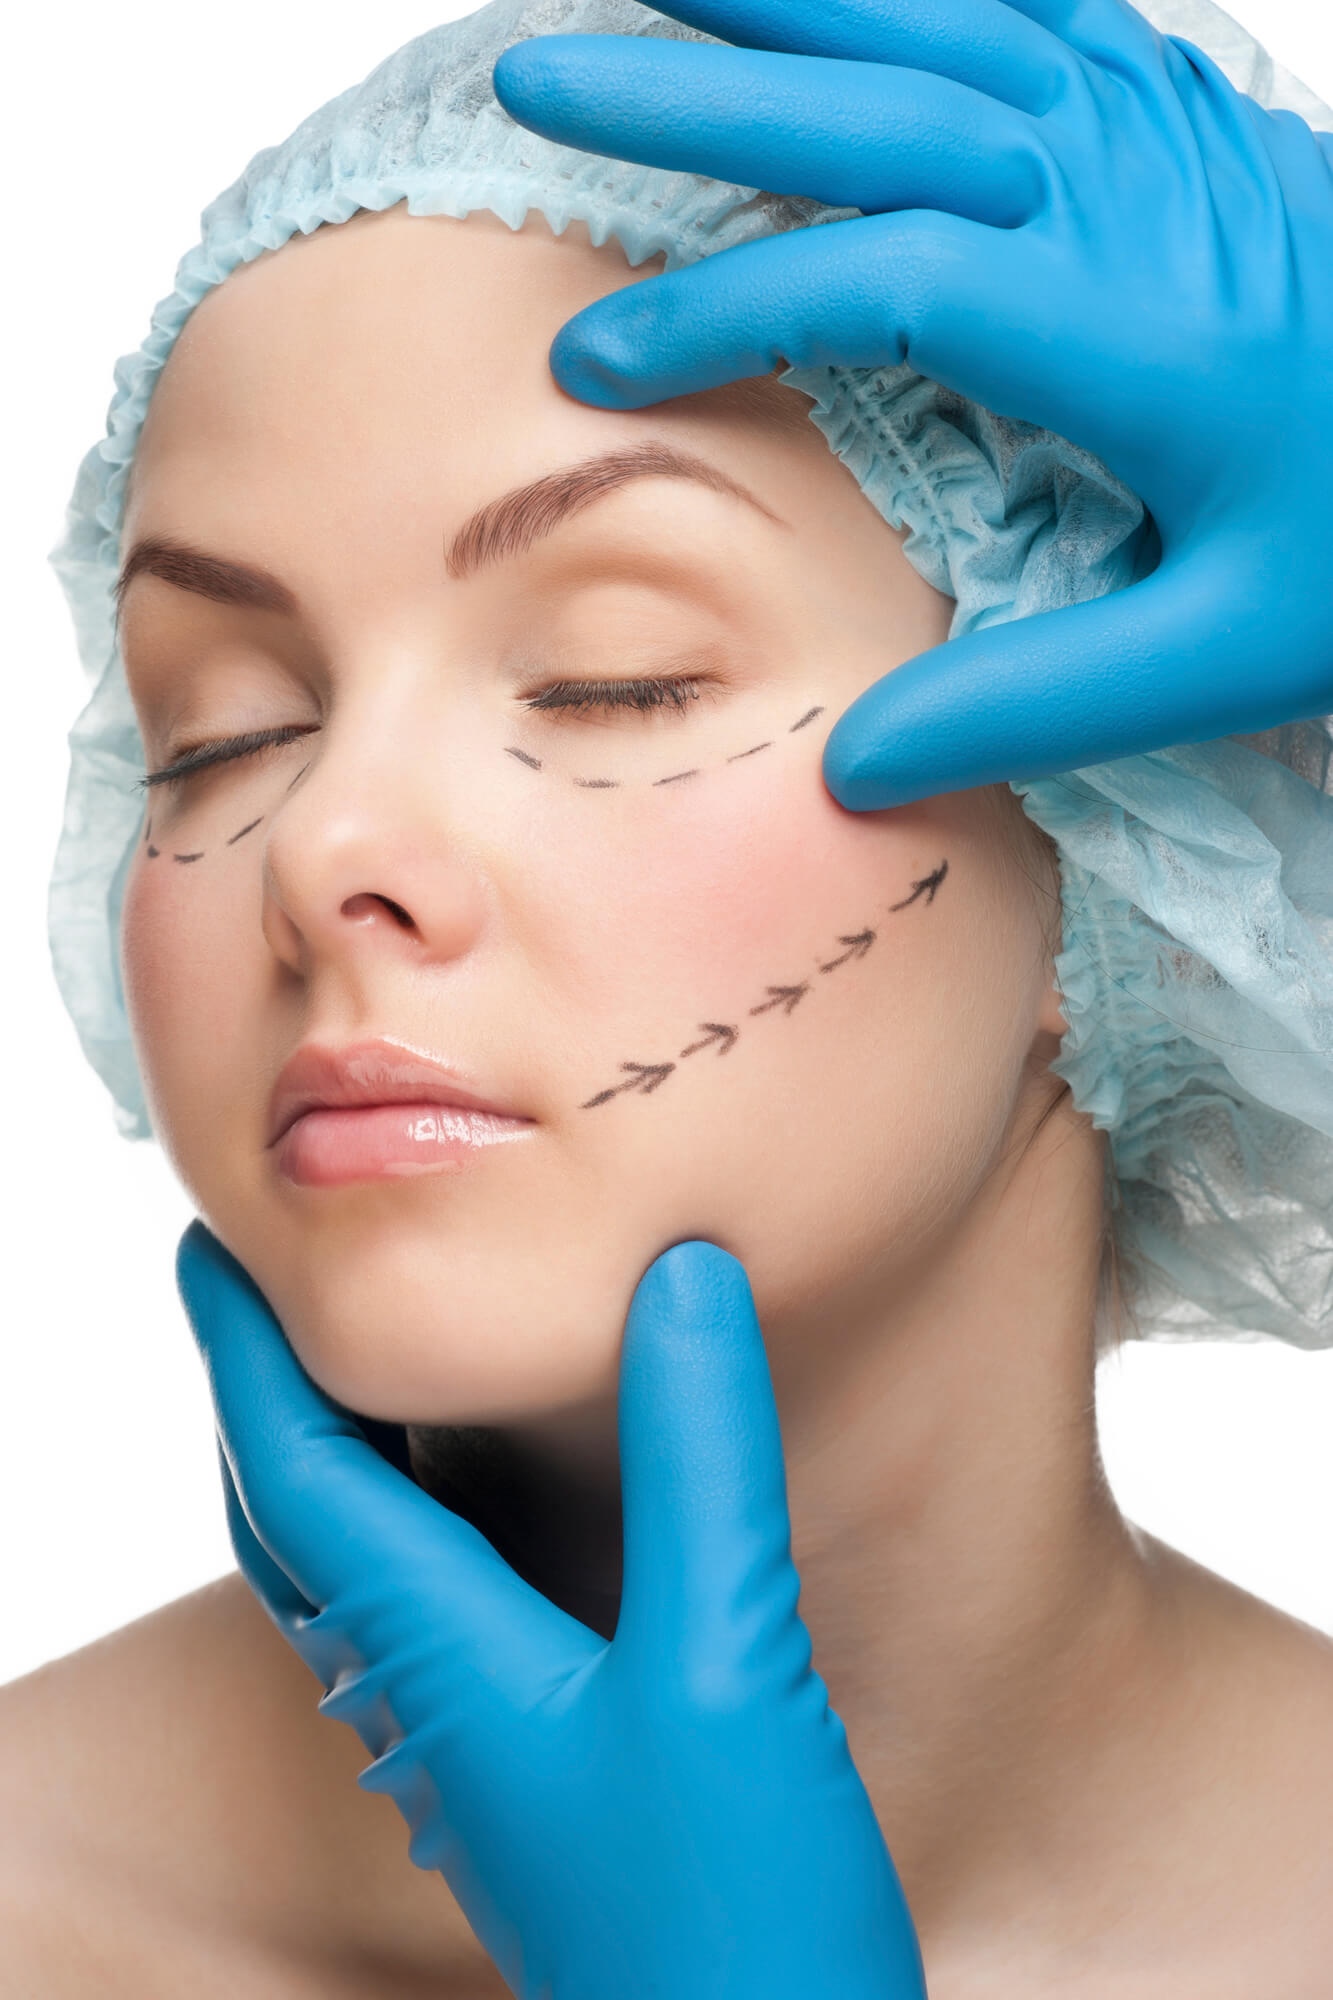 Plastic surgery clinic complex marketing promotion